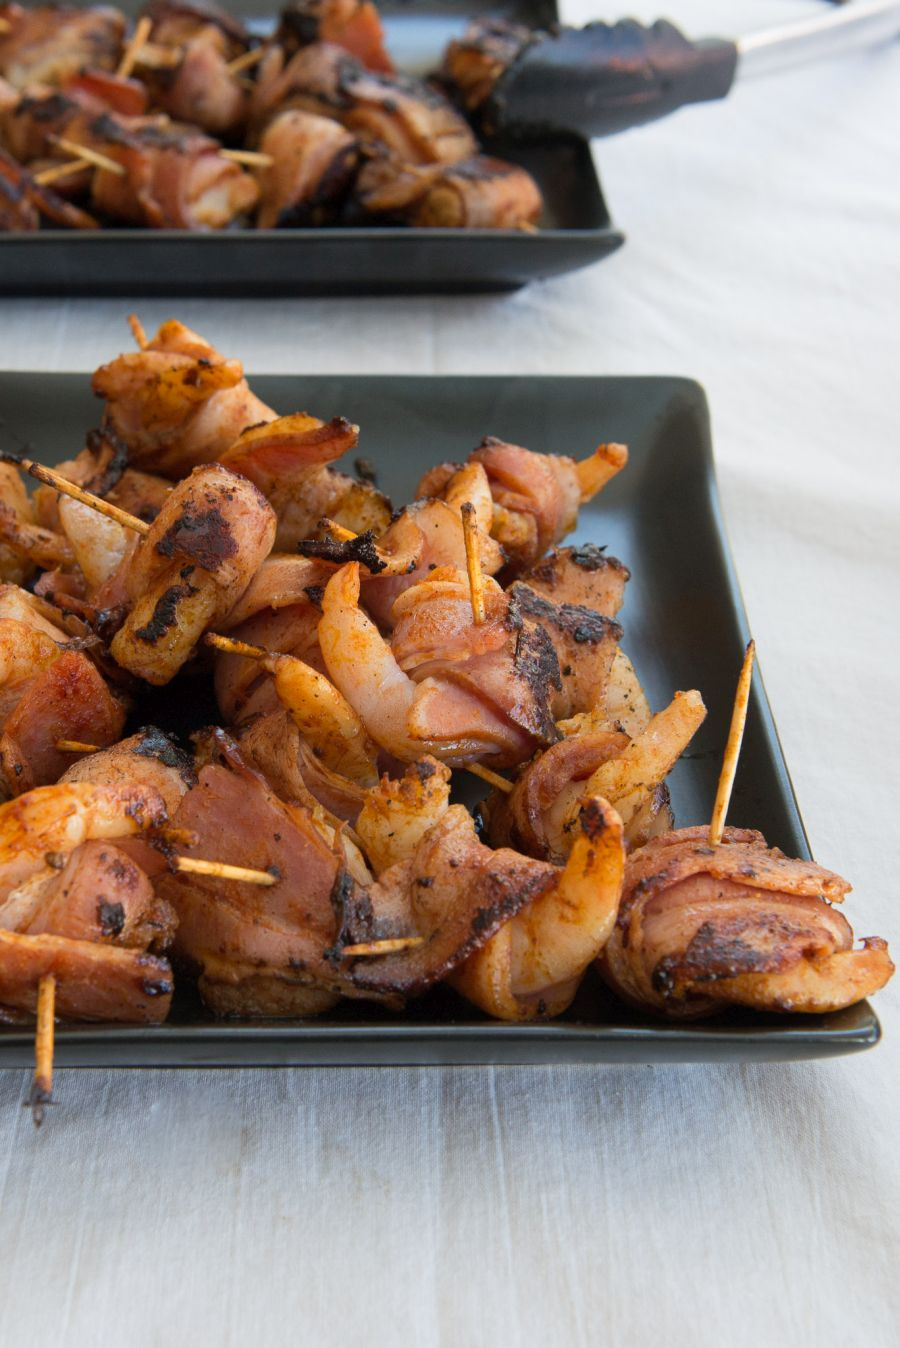 BBQ bacon-wrapped prawns